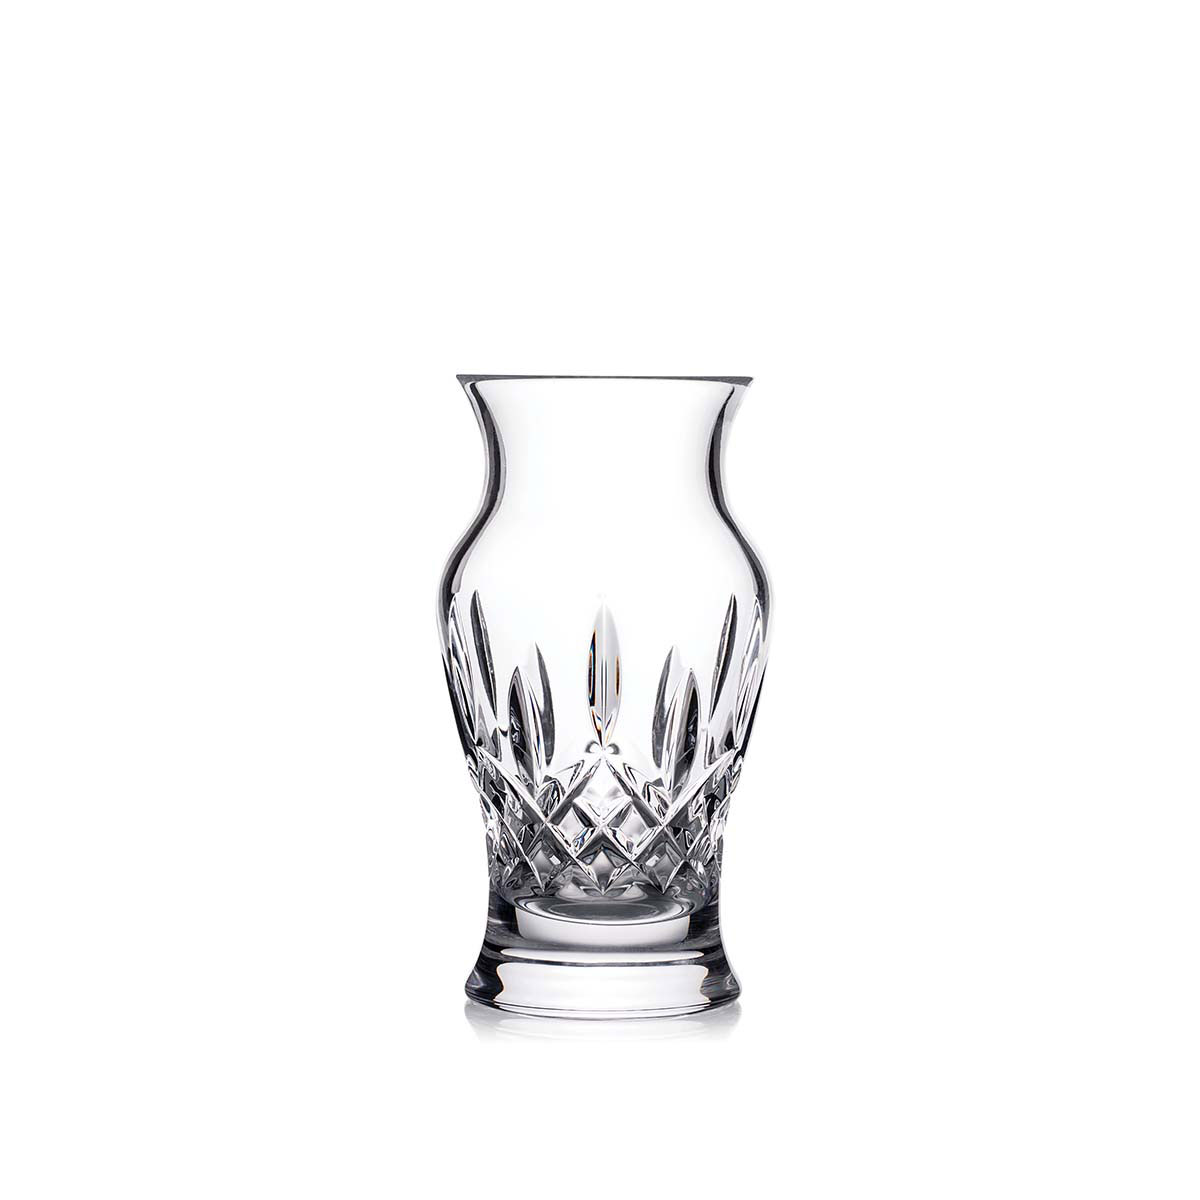 "Waterford Crystal, Giftology Lismore 6"" Crystal Vase"